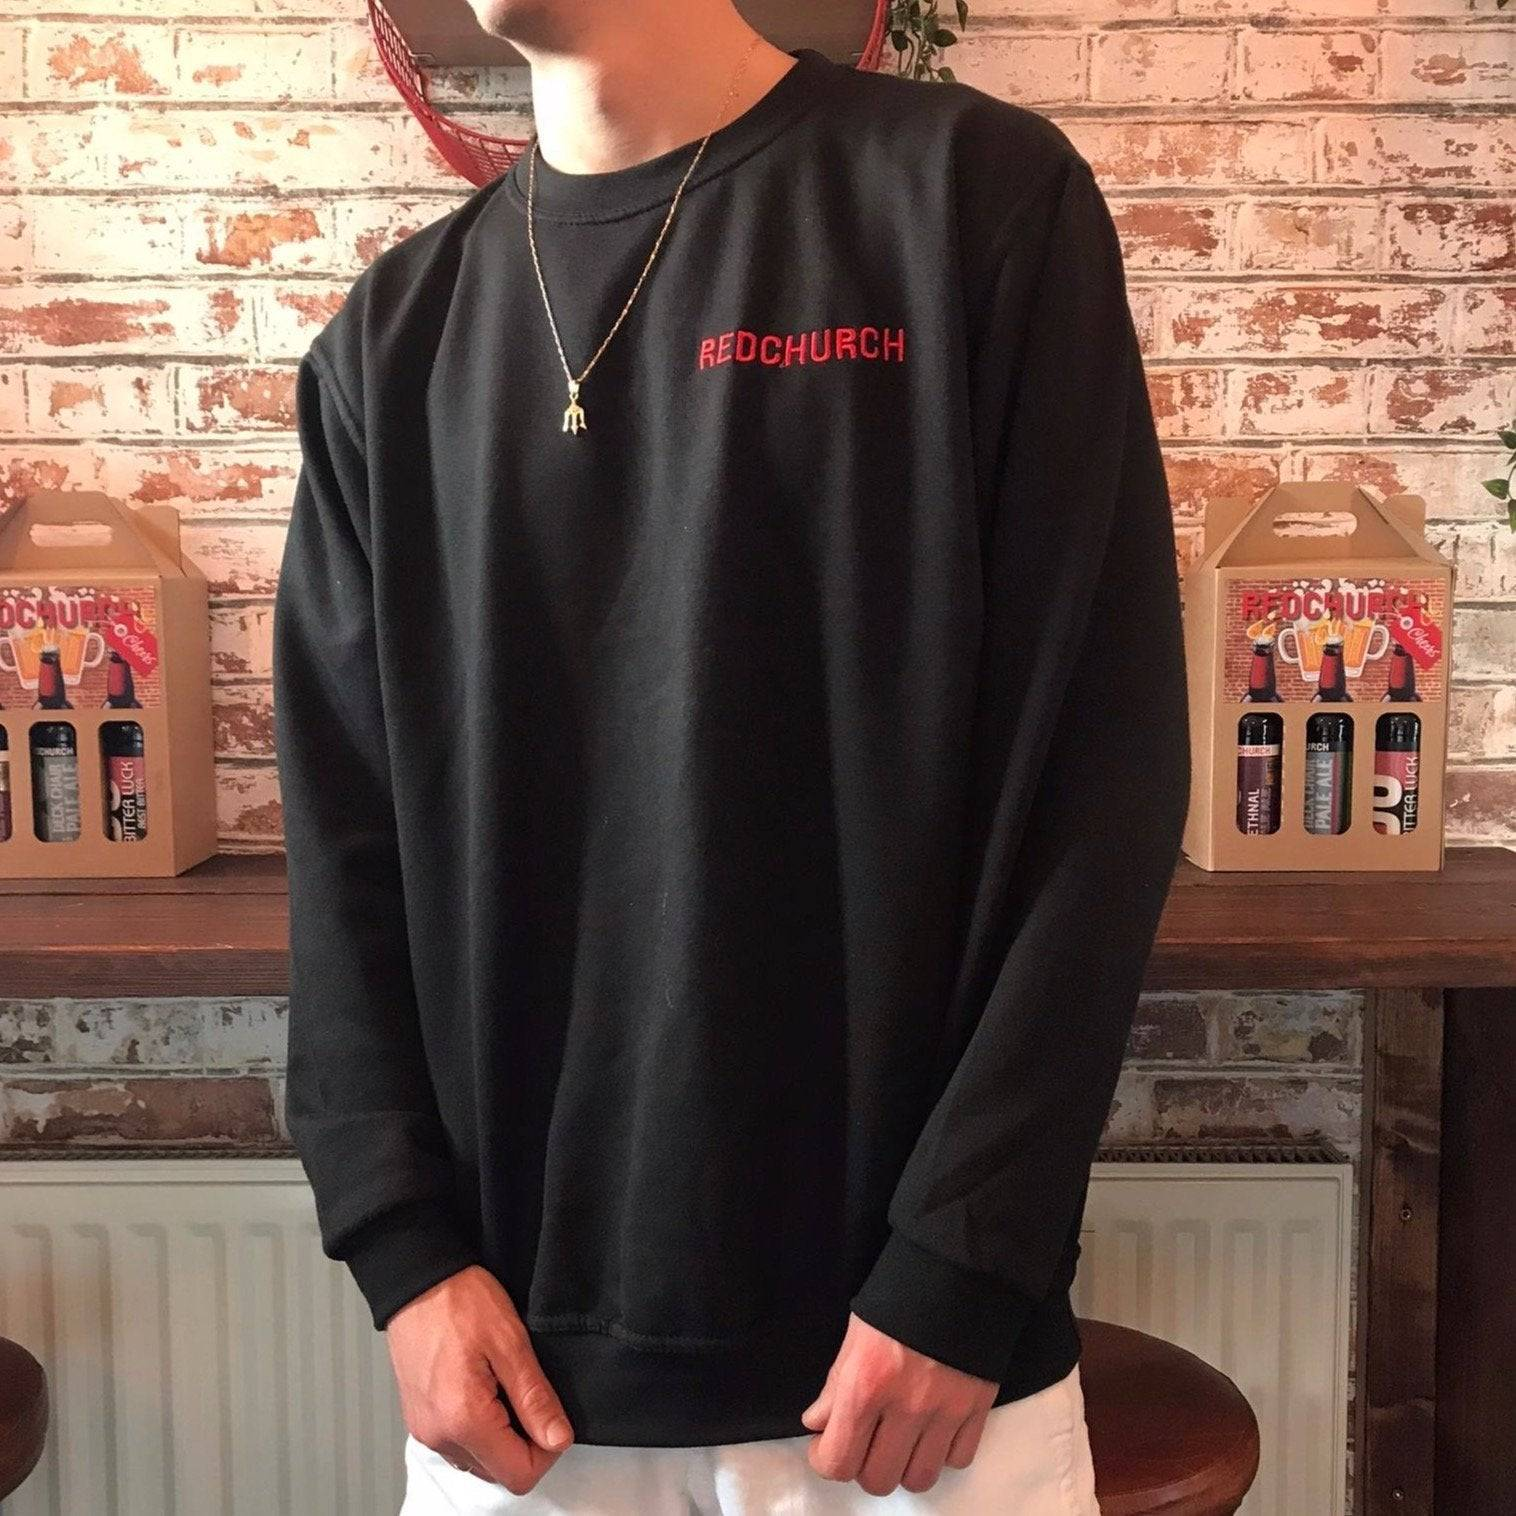 Redchurch Brewery Redchurch Embroidered Sweat Shirt - XL 44-46